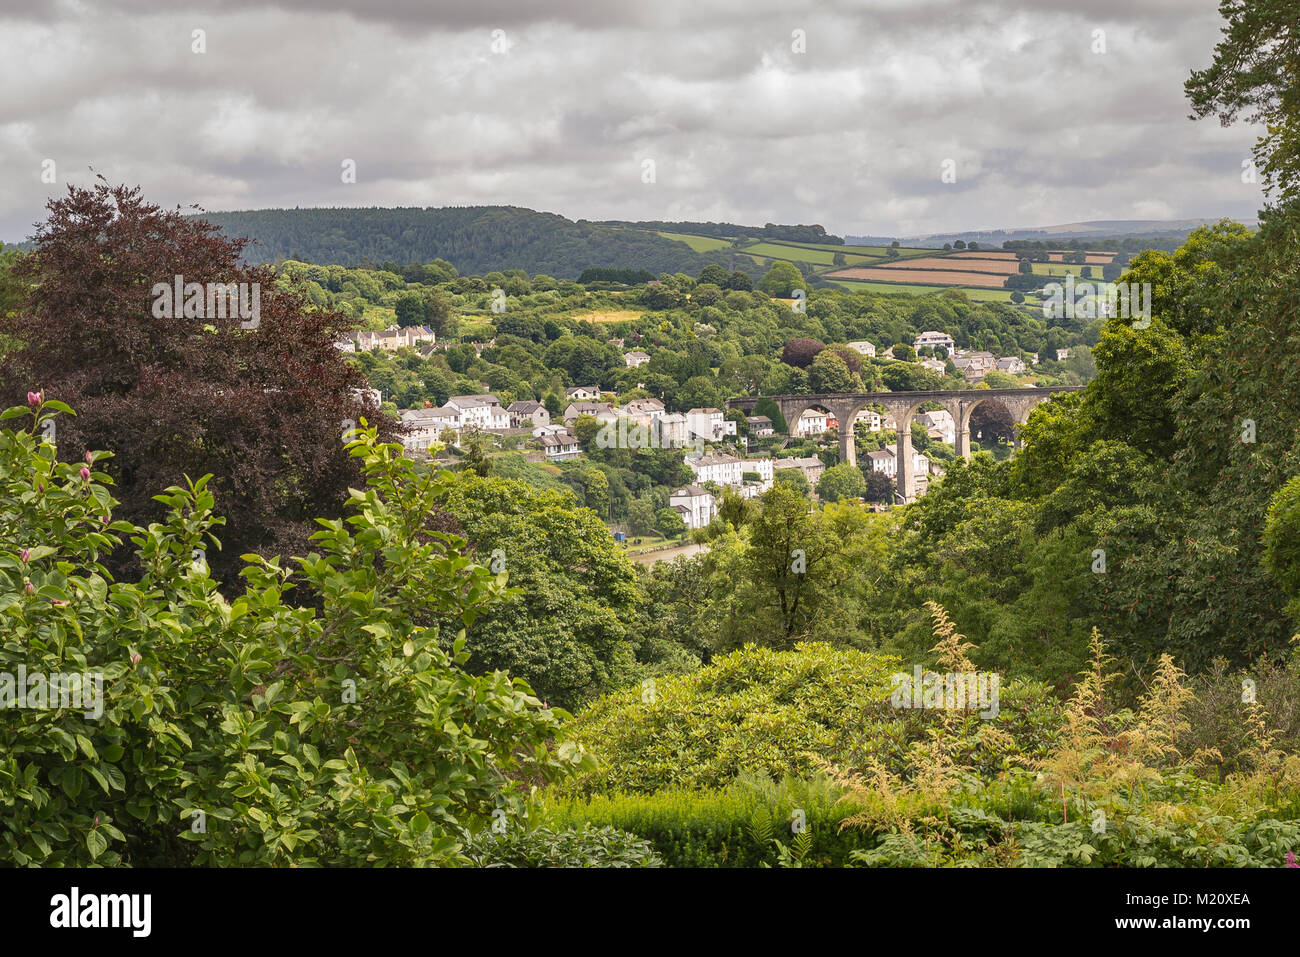 English village with viaduct. - Stock Image